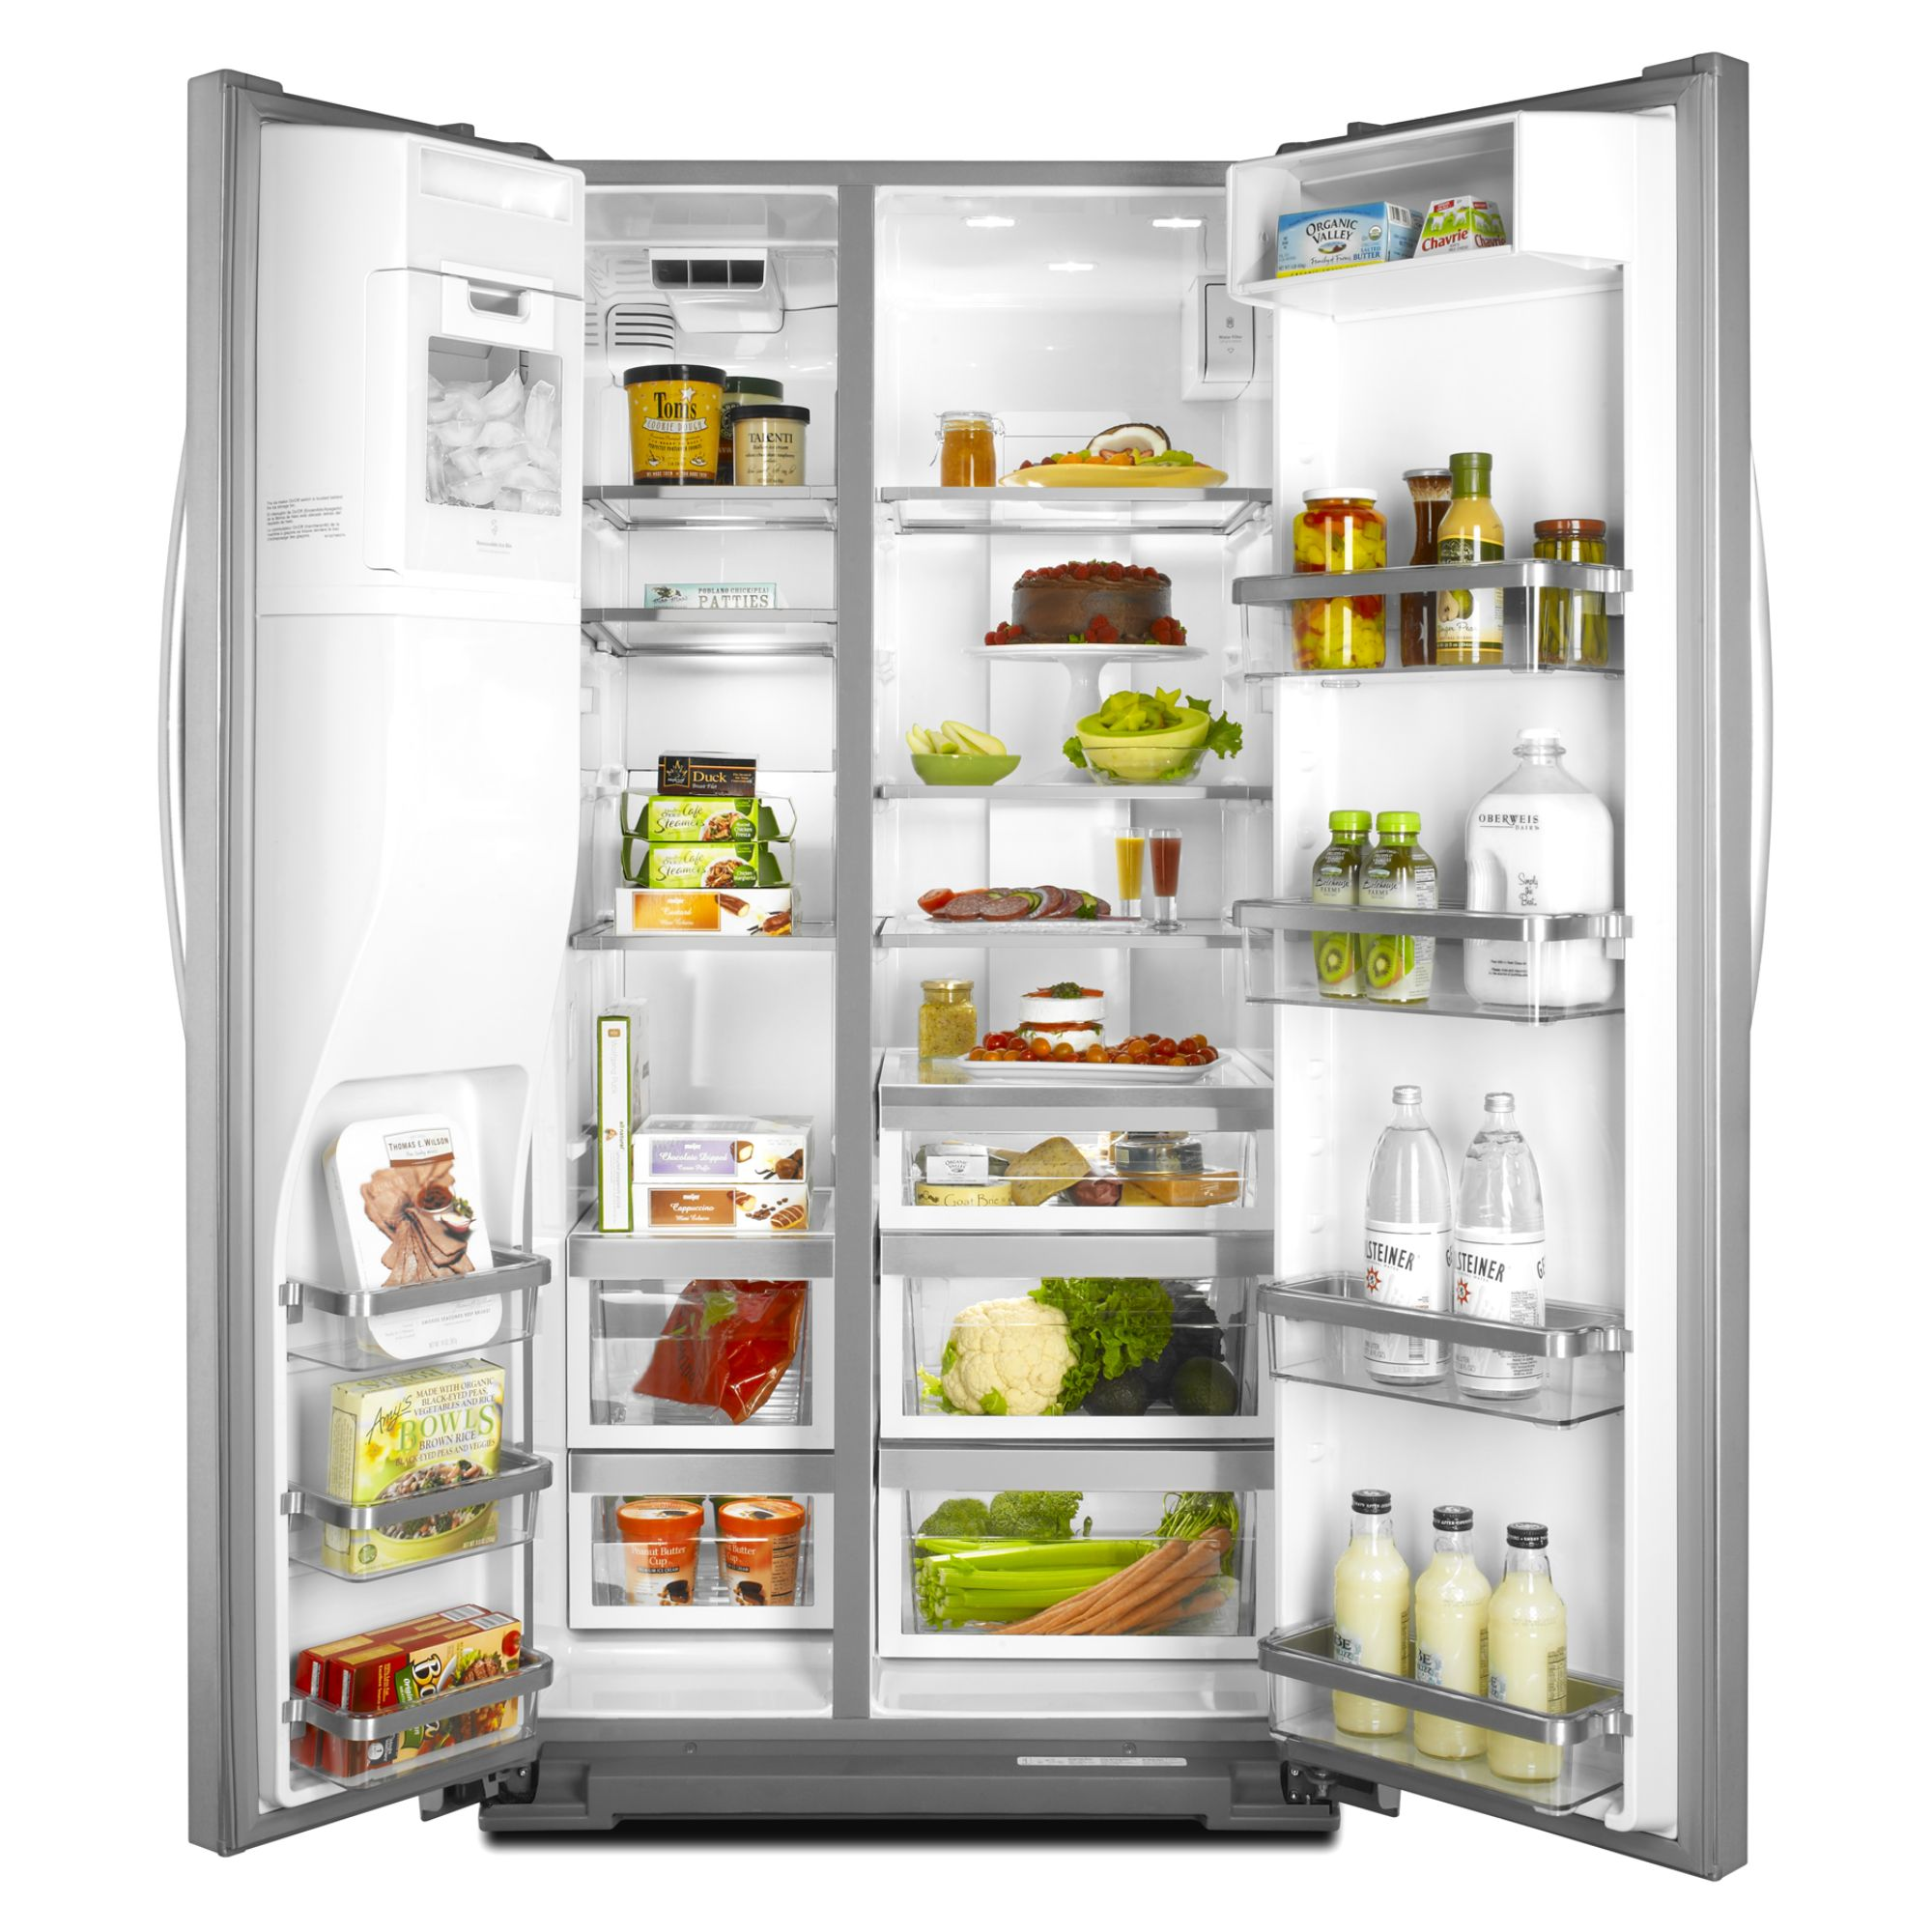 KitchenAid 23.9 cu. ft. Counter-Depth Side-by-Side Refrigerator - Stainless Steel